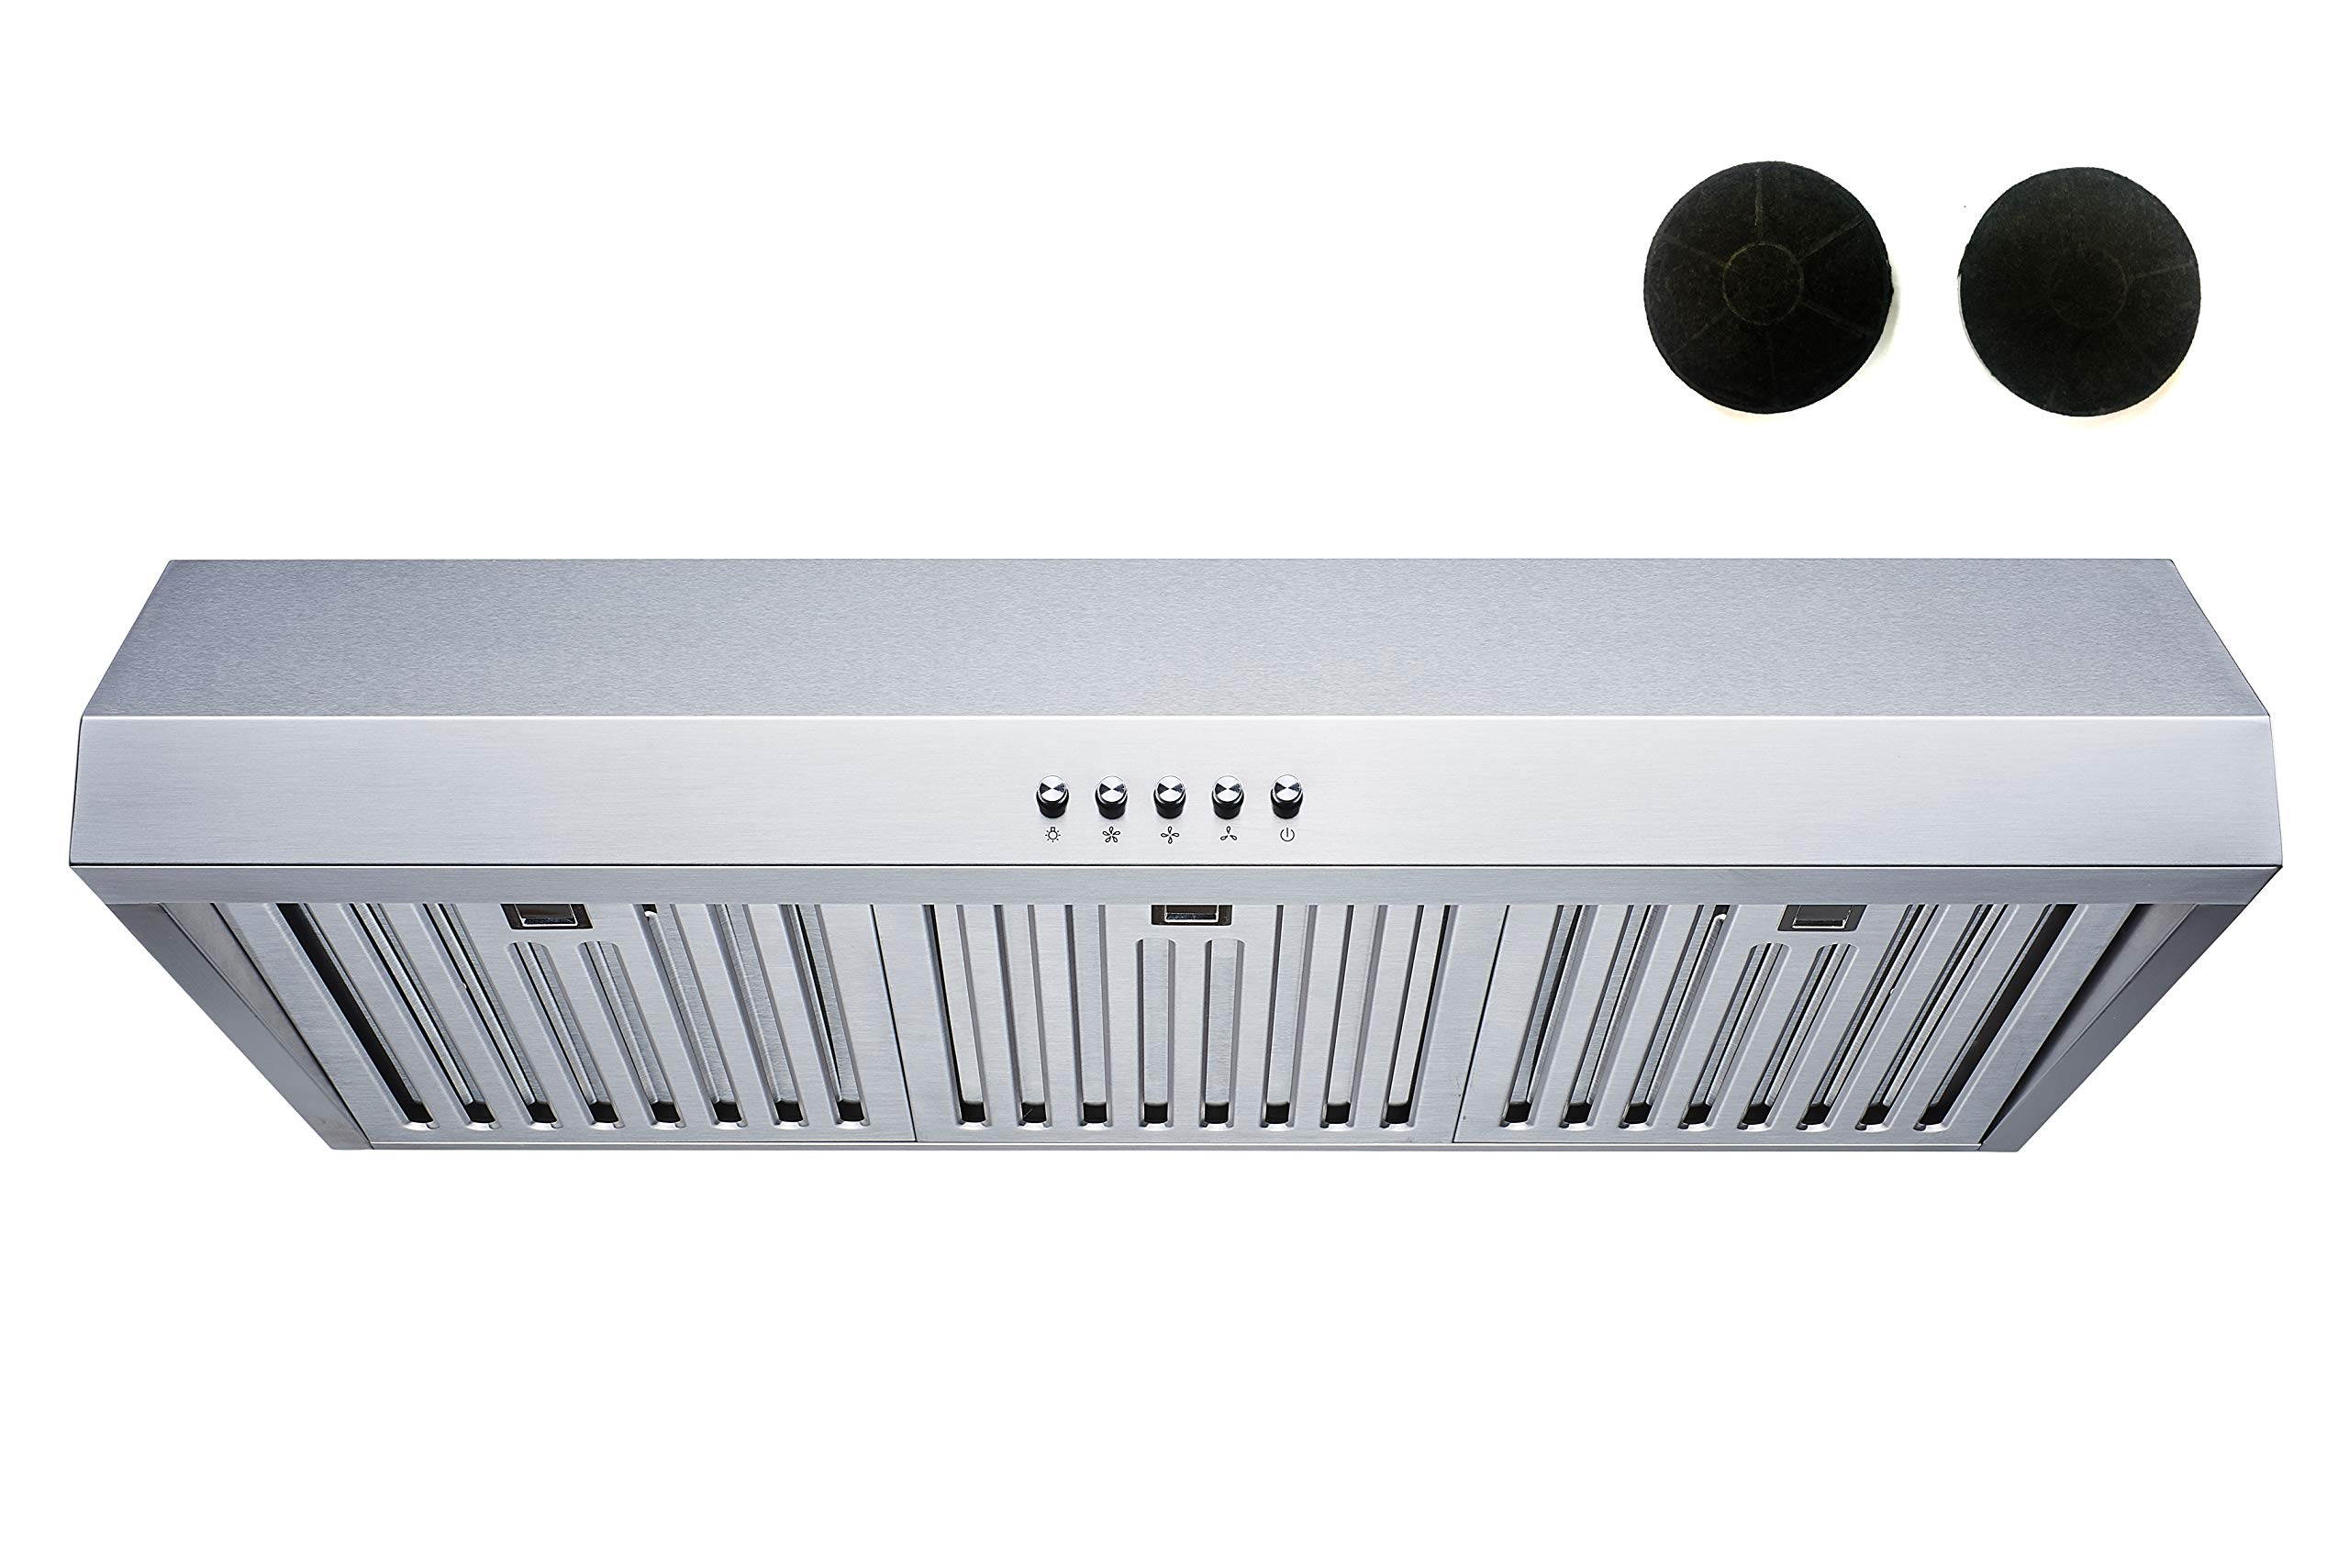 Winflo 30 In. 480 CFM Convertible Stainless Steel Under Cabinet Range Hood with Stainless Steel Baffle Filters and Charcoal Filters and Push Button Control